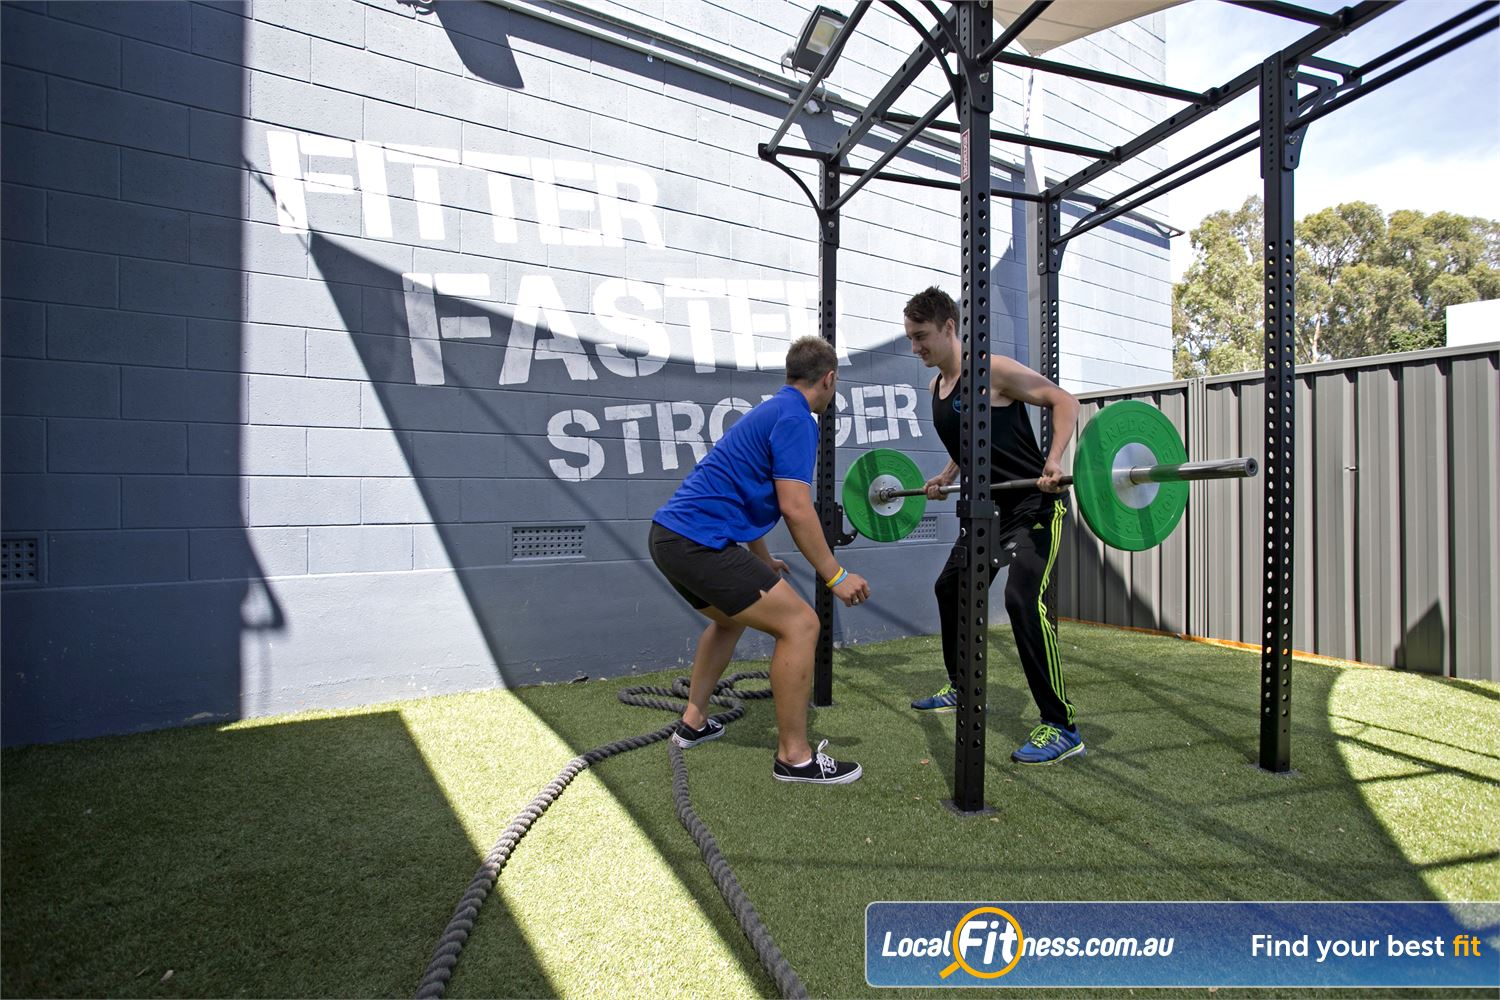 Goodlife Health Clubs Mitcham Near Lower Mitcham Incorporate outdoor weight training into your workouts with our unique outdoor training zone.